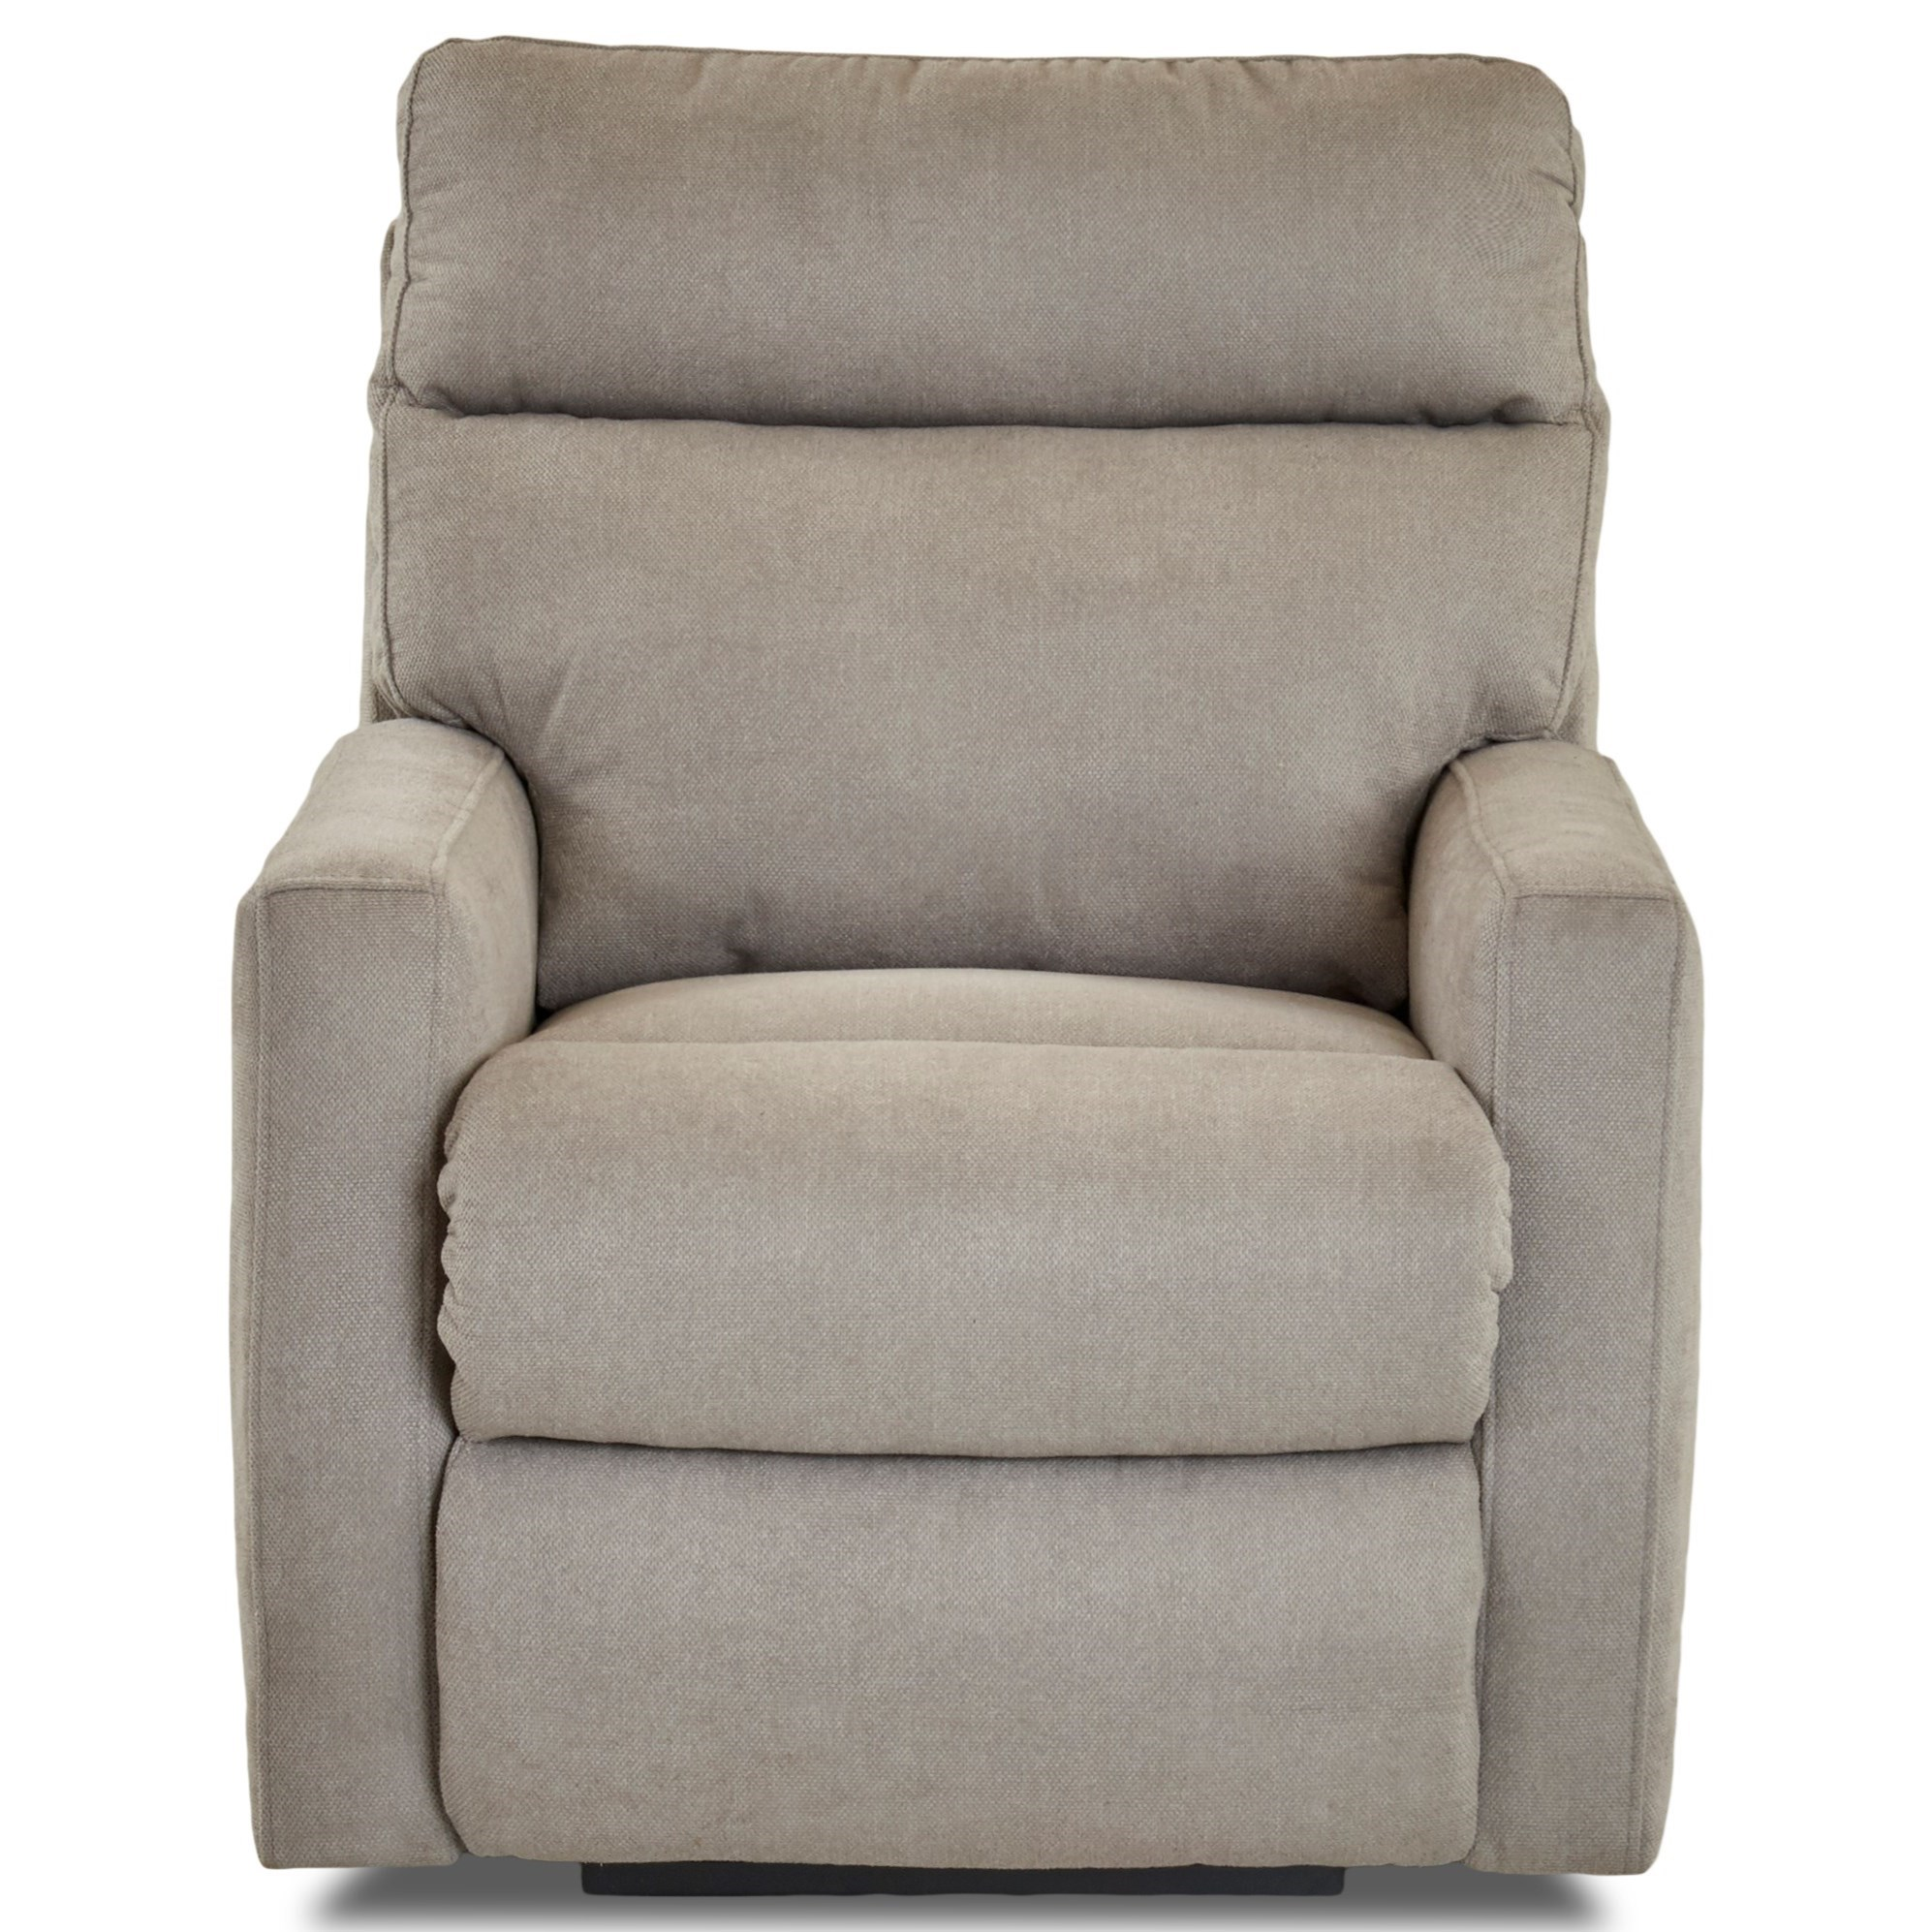 Daphne Gliding Reclining Chair by Klaussner at Northeast Factory Direct